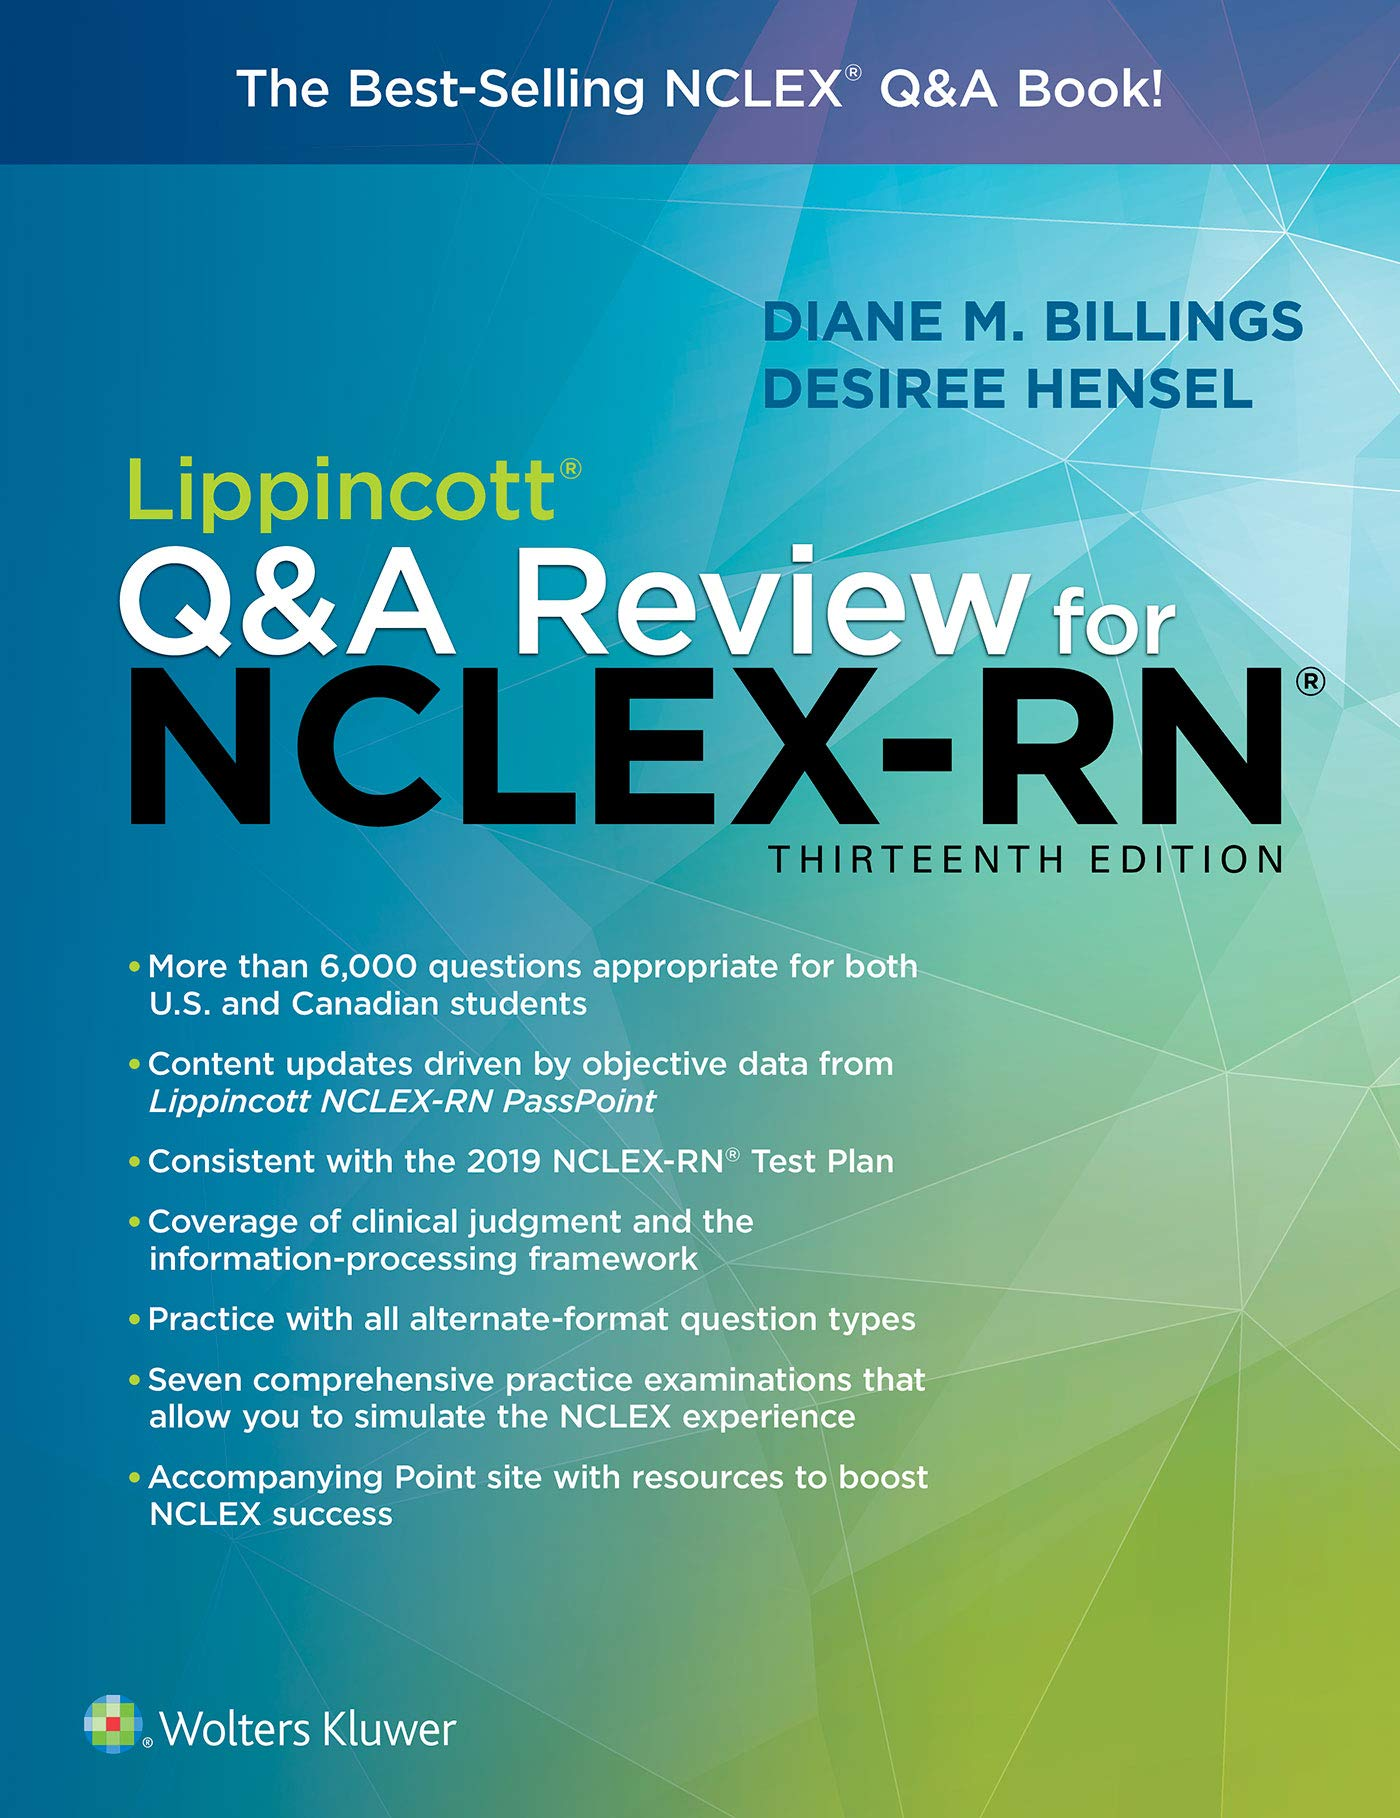 Lippincott Q&A Review for NCLEX-RN (Lippincott's Review For NCLEX-RN) by LWW